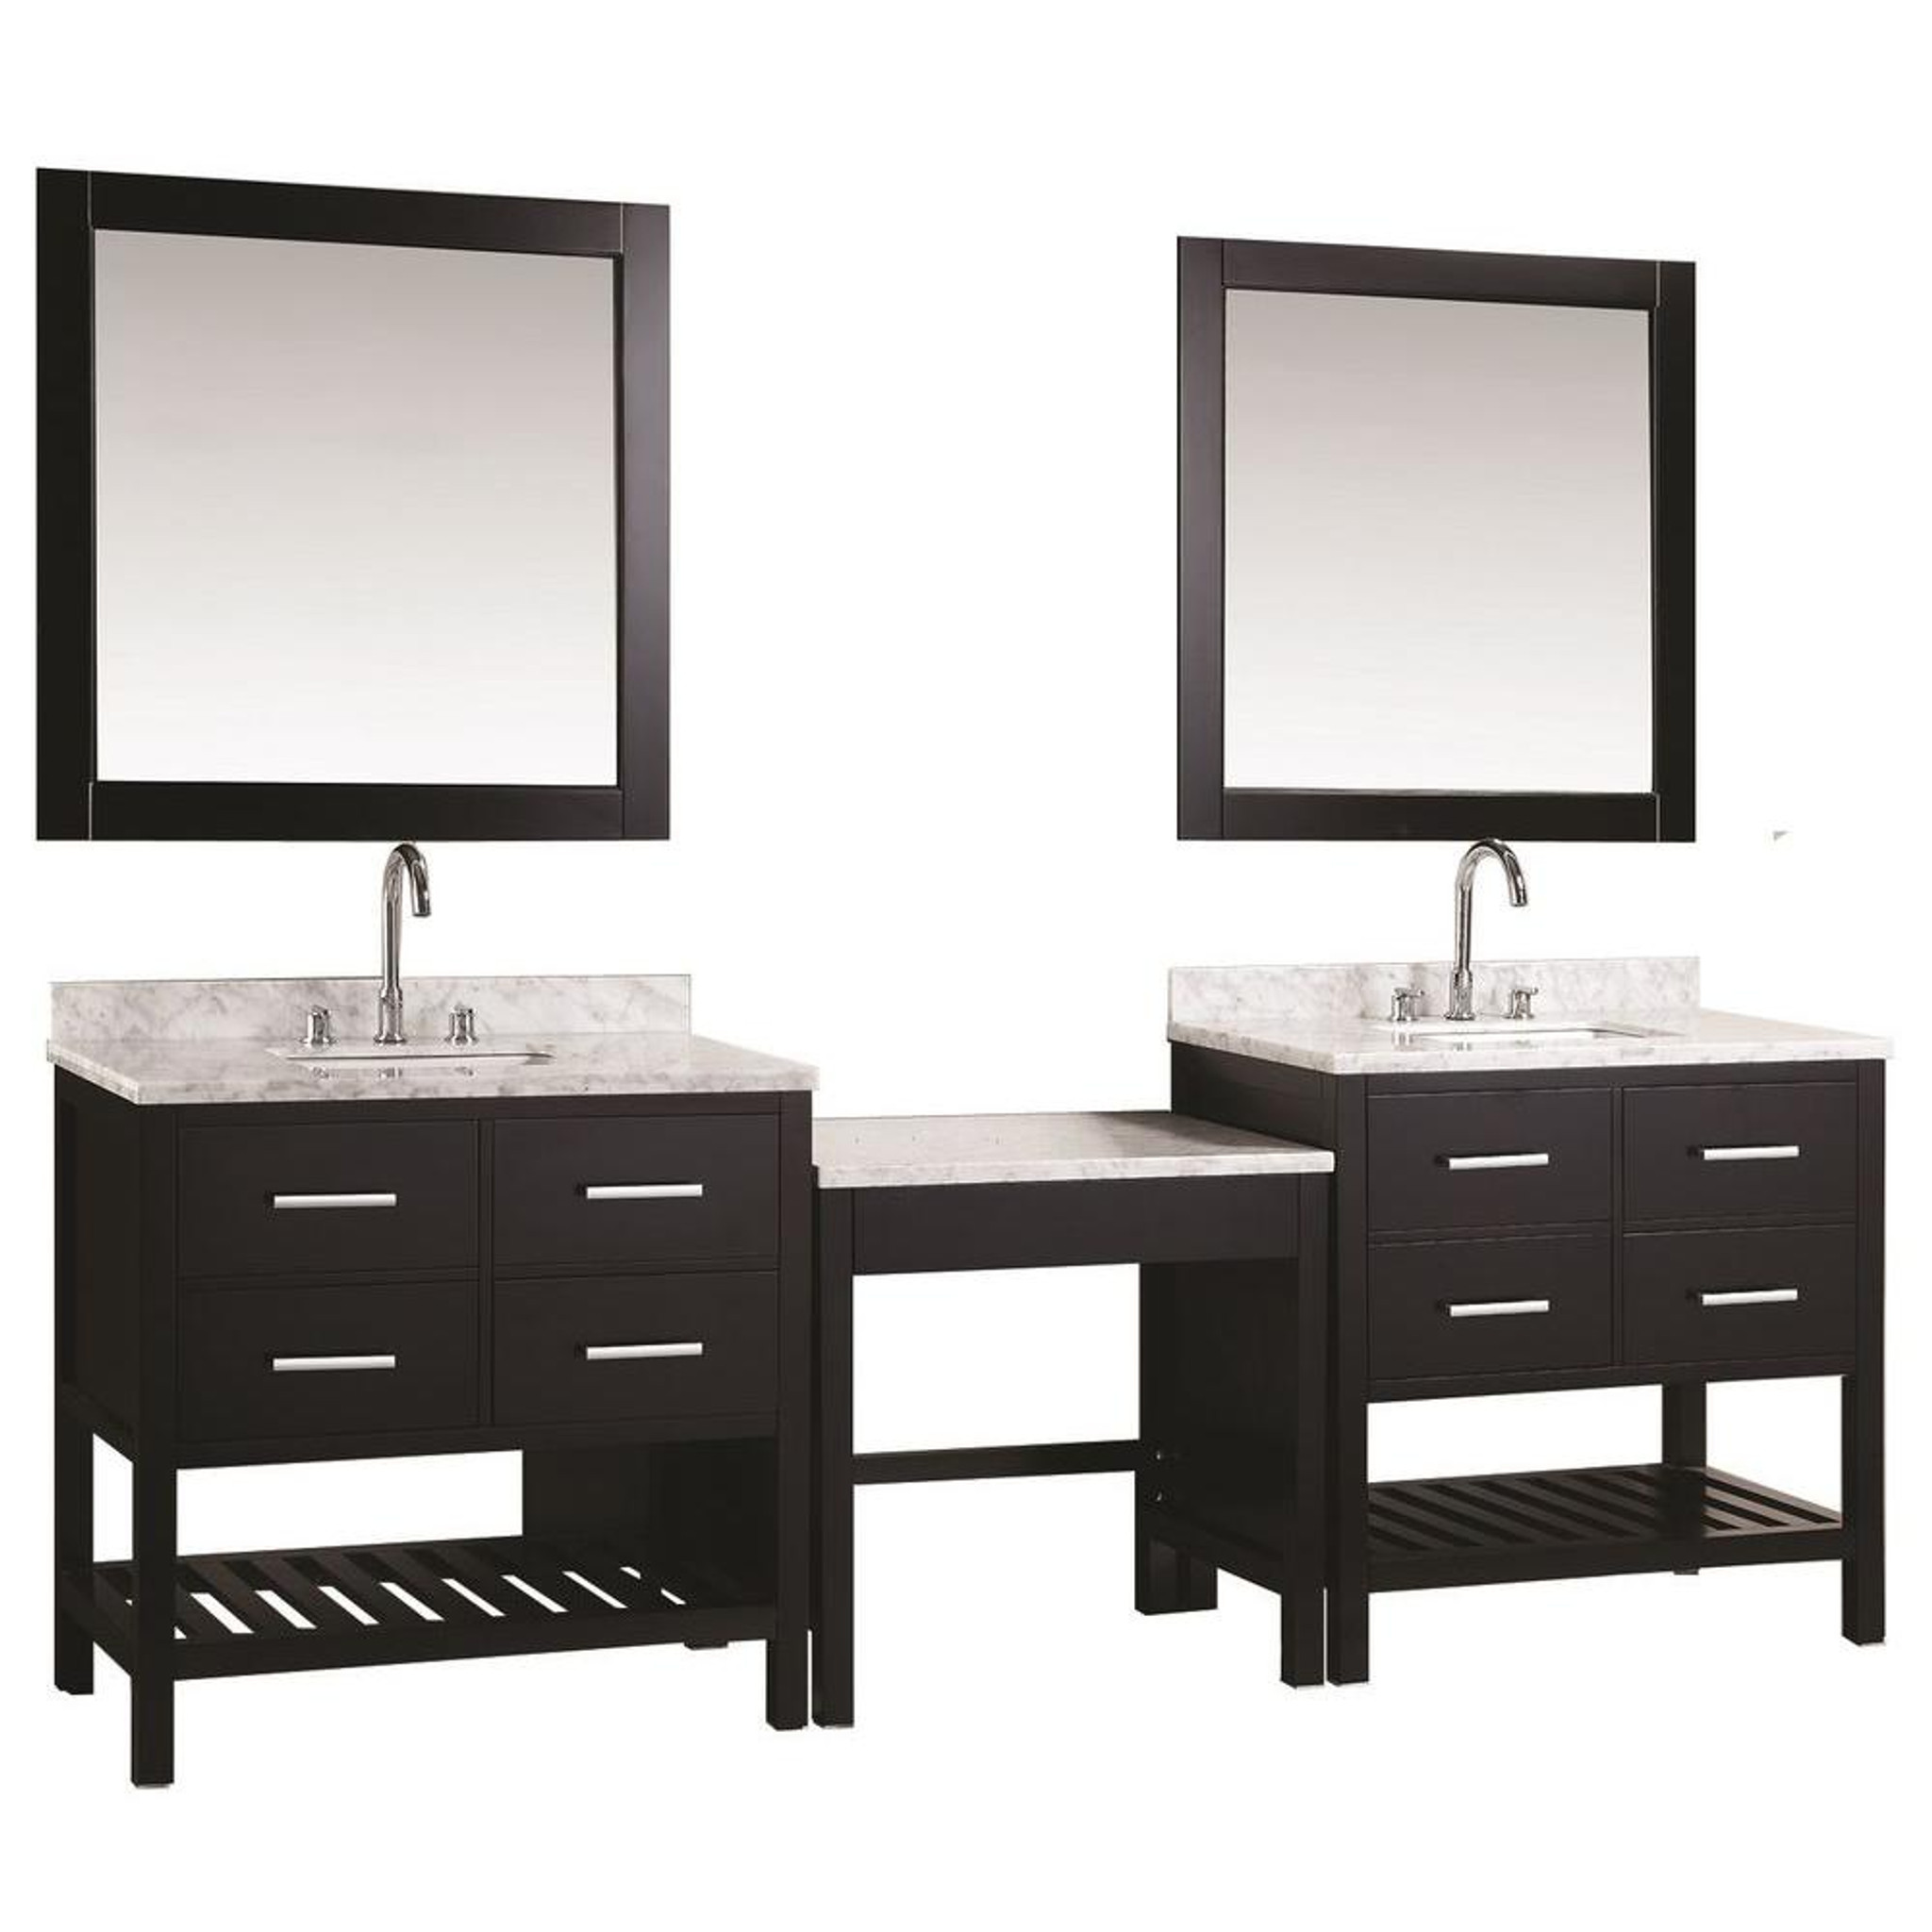 design element dec077ax2 mut two london cambridge 36 single sink vanity set in espresso with one make up table in espresso